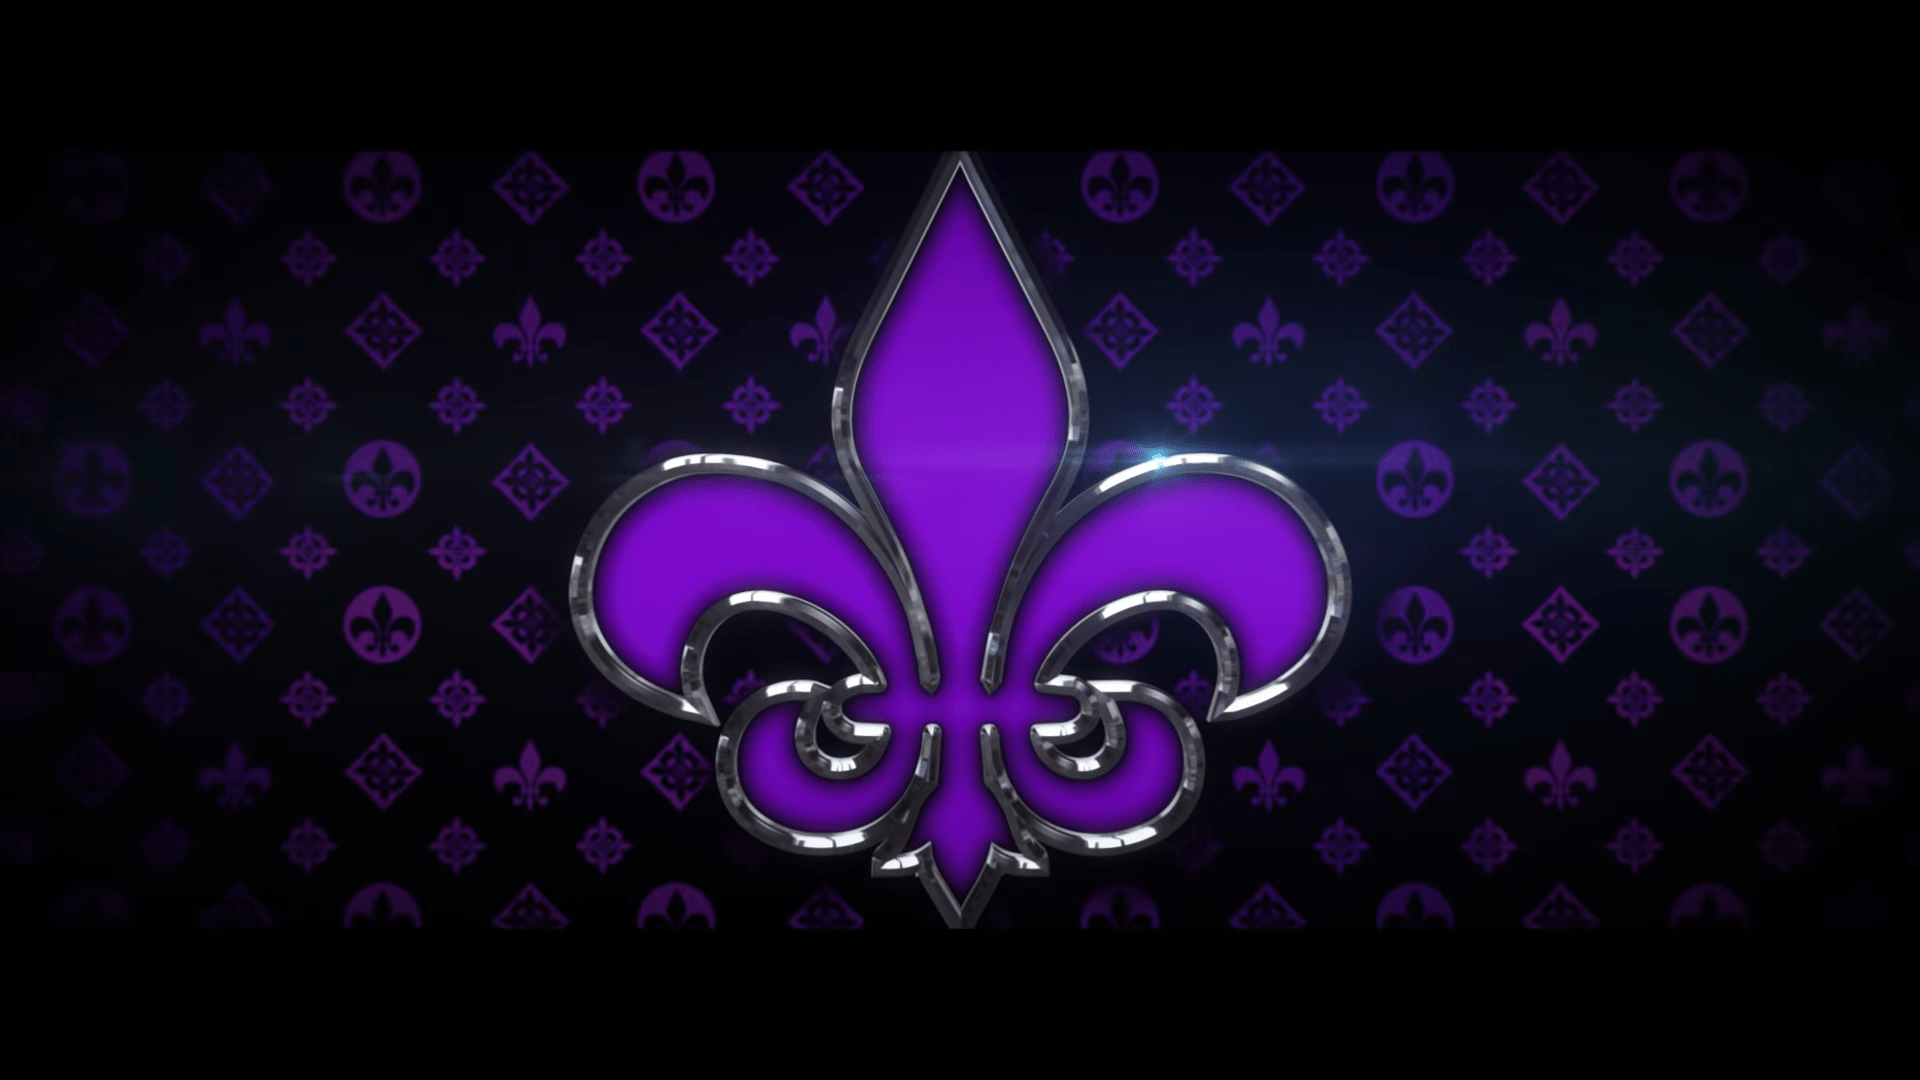 Deep Silver Confirms That The A New Saints Row Game Will Be Announced In 2020 Actiongames Pcmac Playstation Saintsrow Saints Row The Row Saints Row 4